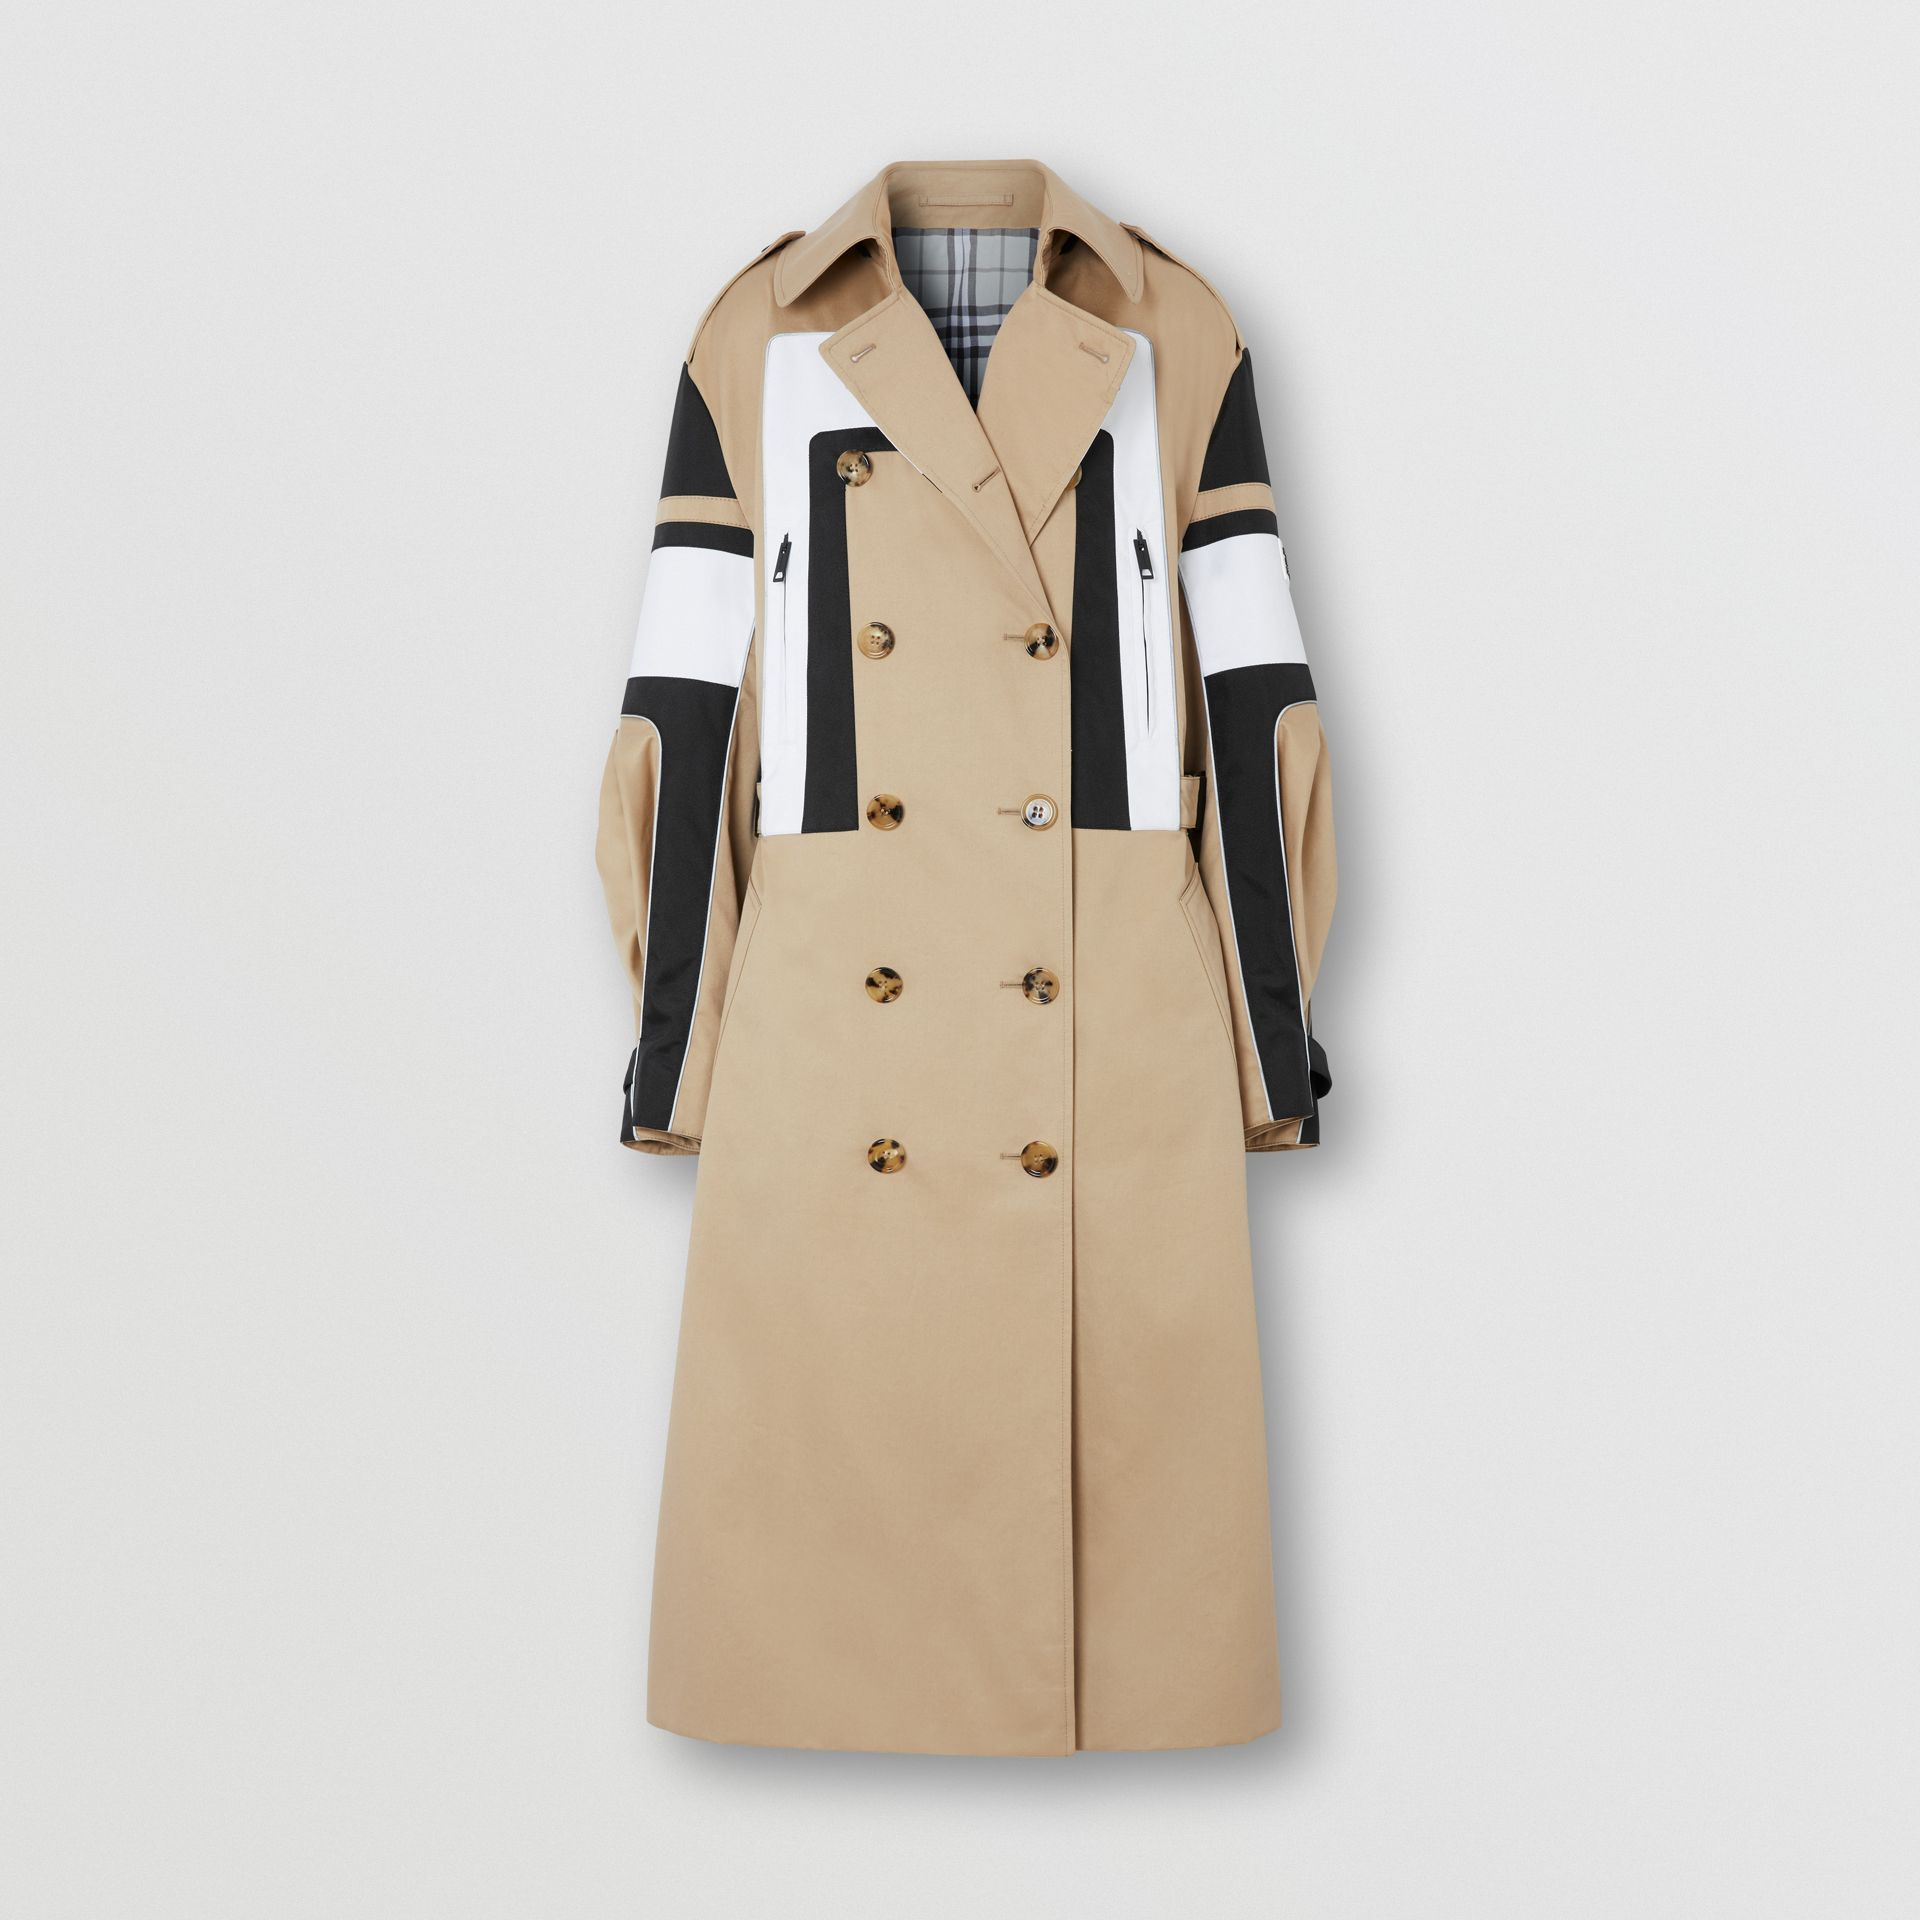 Cotton Gabardine Reconstructed Trench Coat in Soft Fawn - Women | Burberry Australia - gallery image 3